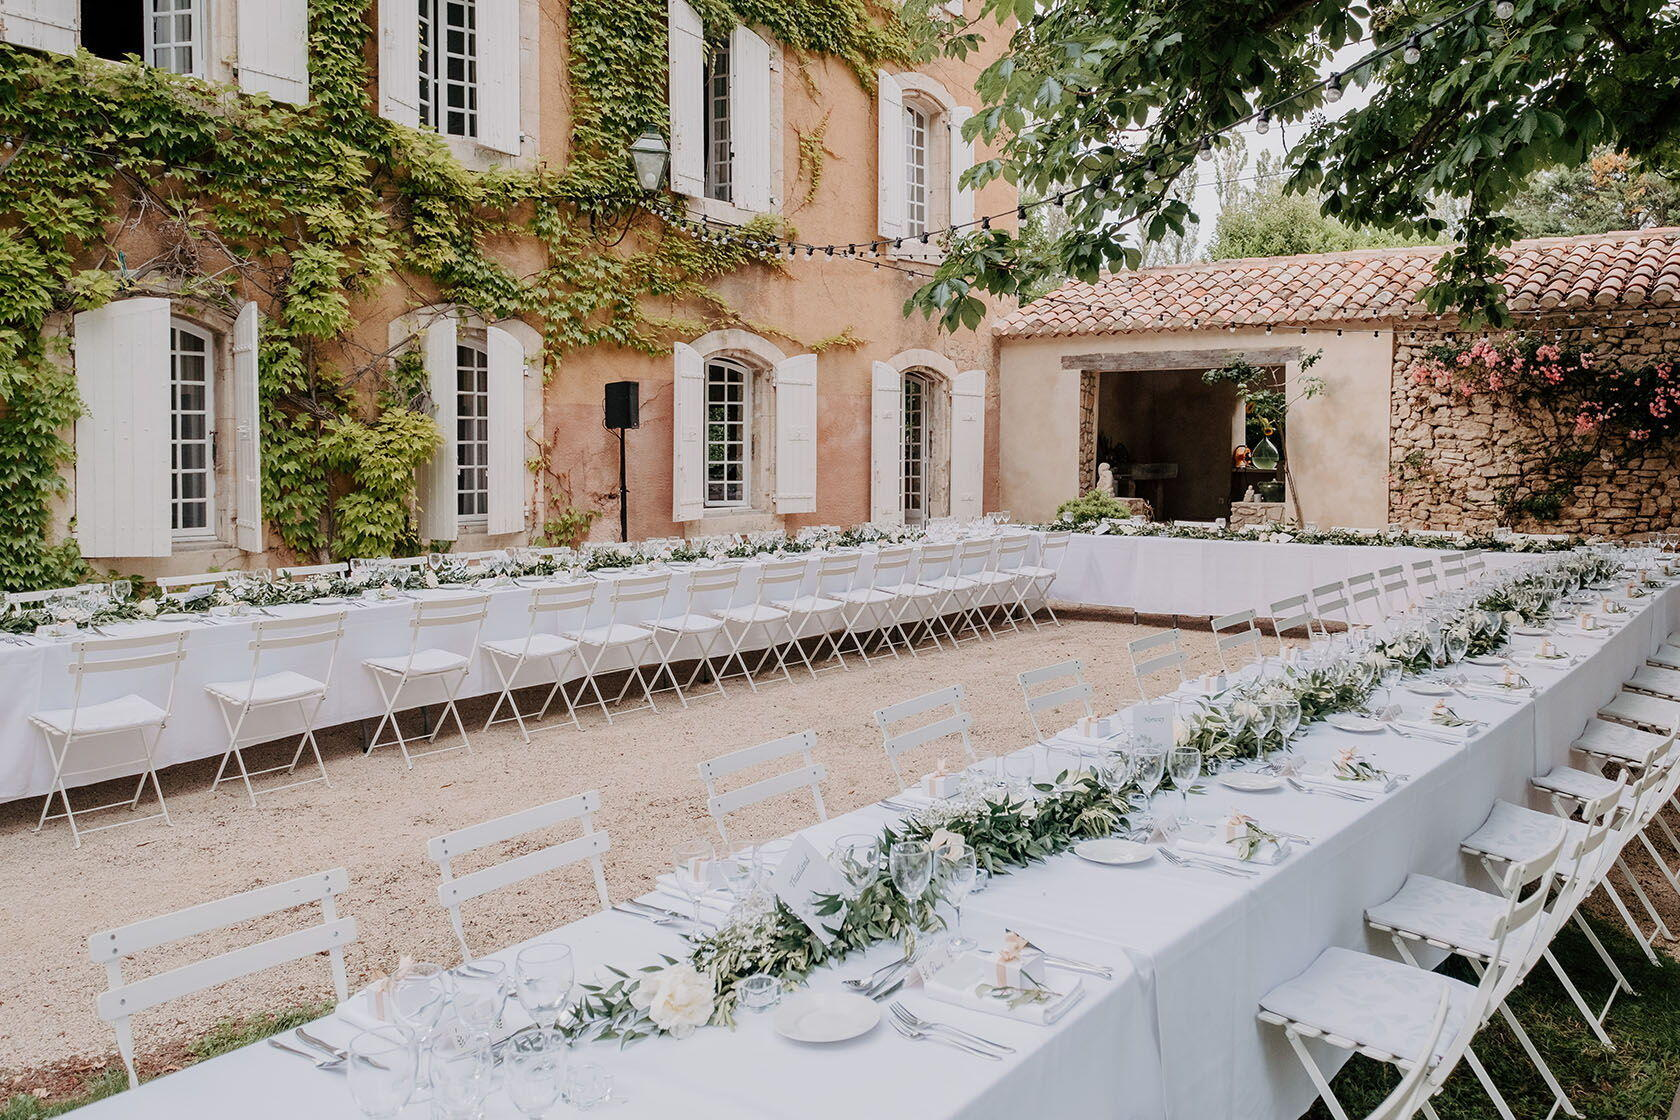 Guide Dream Weddings Provence Domaine de Palerme Weddings in Provence